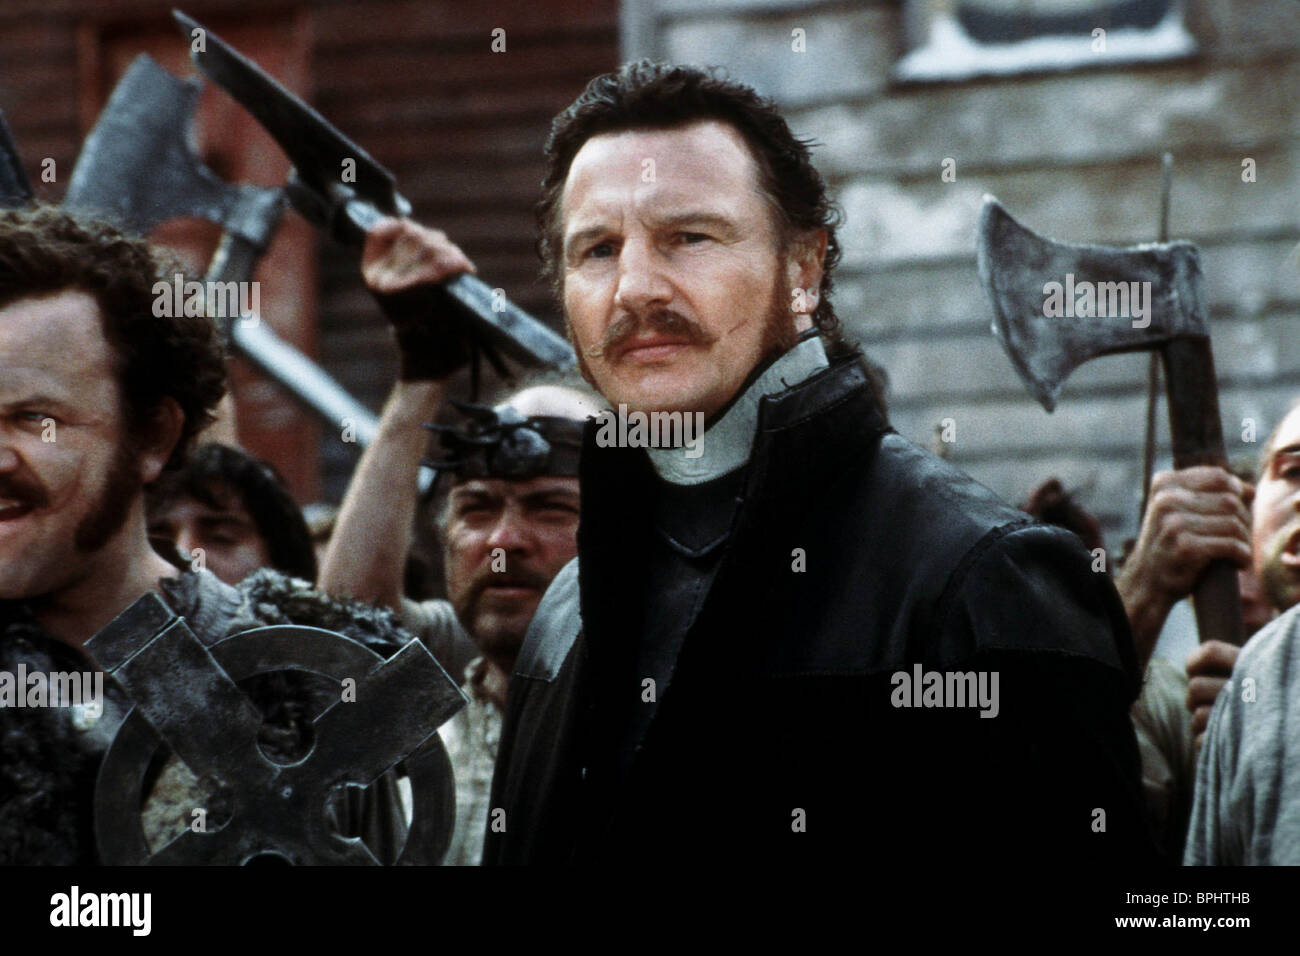 LIAM NEESON GANGS OF NEW YORK (2002) - Stock Image